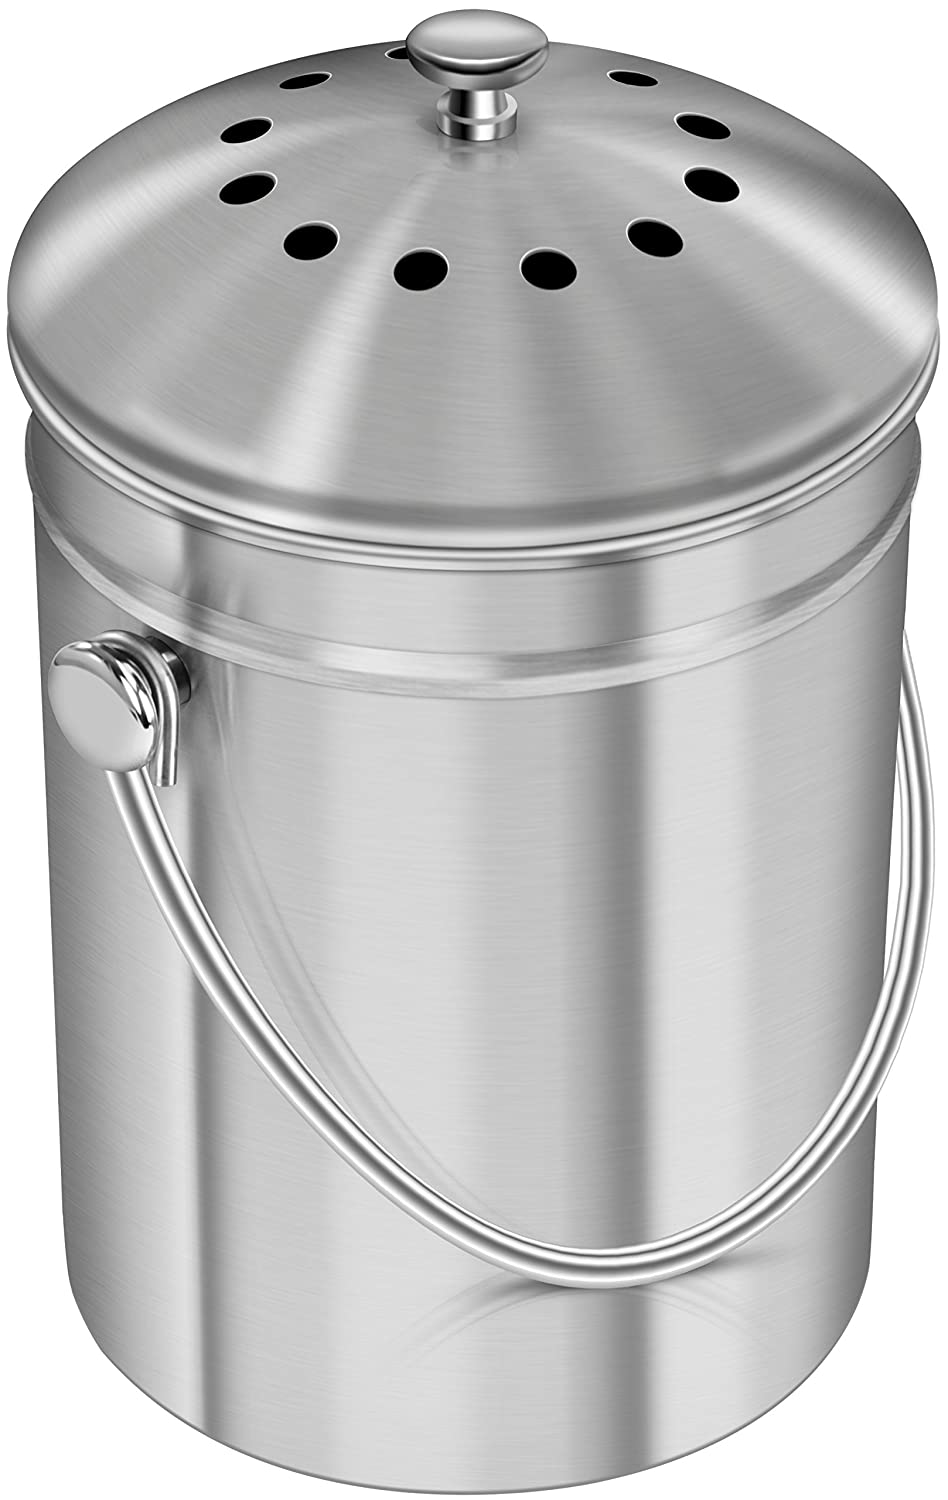 Utopia Kitchen Stainless Steel Compost Bin Kitchen Countertop - 1.3 Gallon Compost Bucket Kitchen Pail Compost Lid - Includes 1 Spare Charcoal Filter (1) UK0051